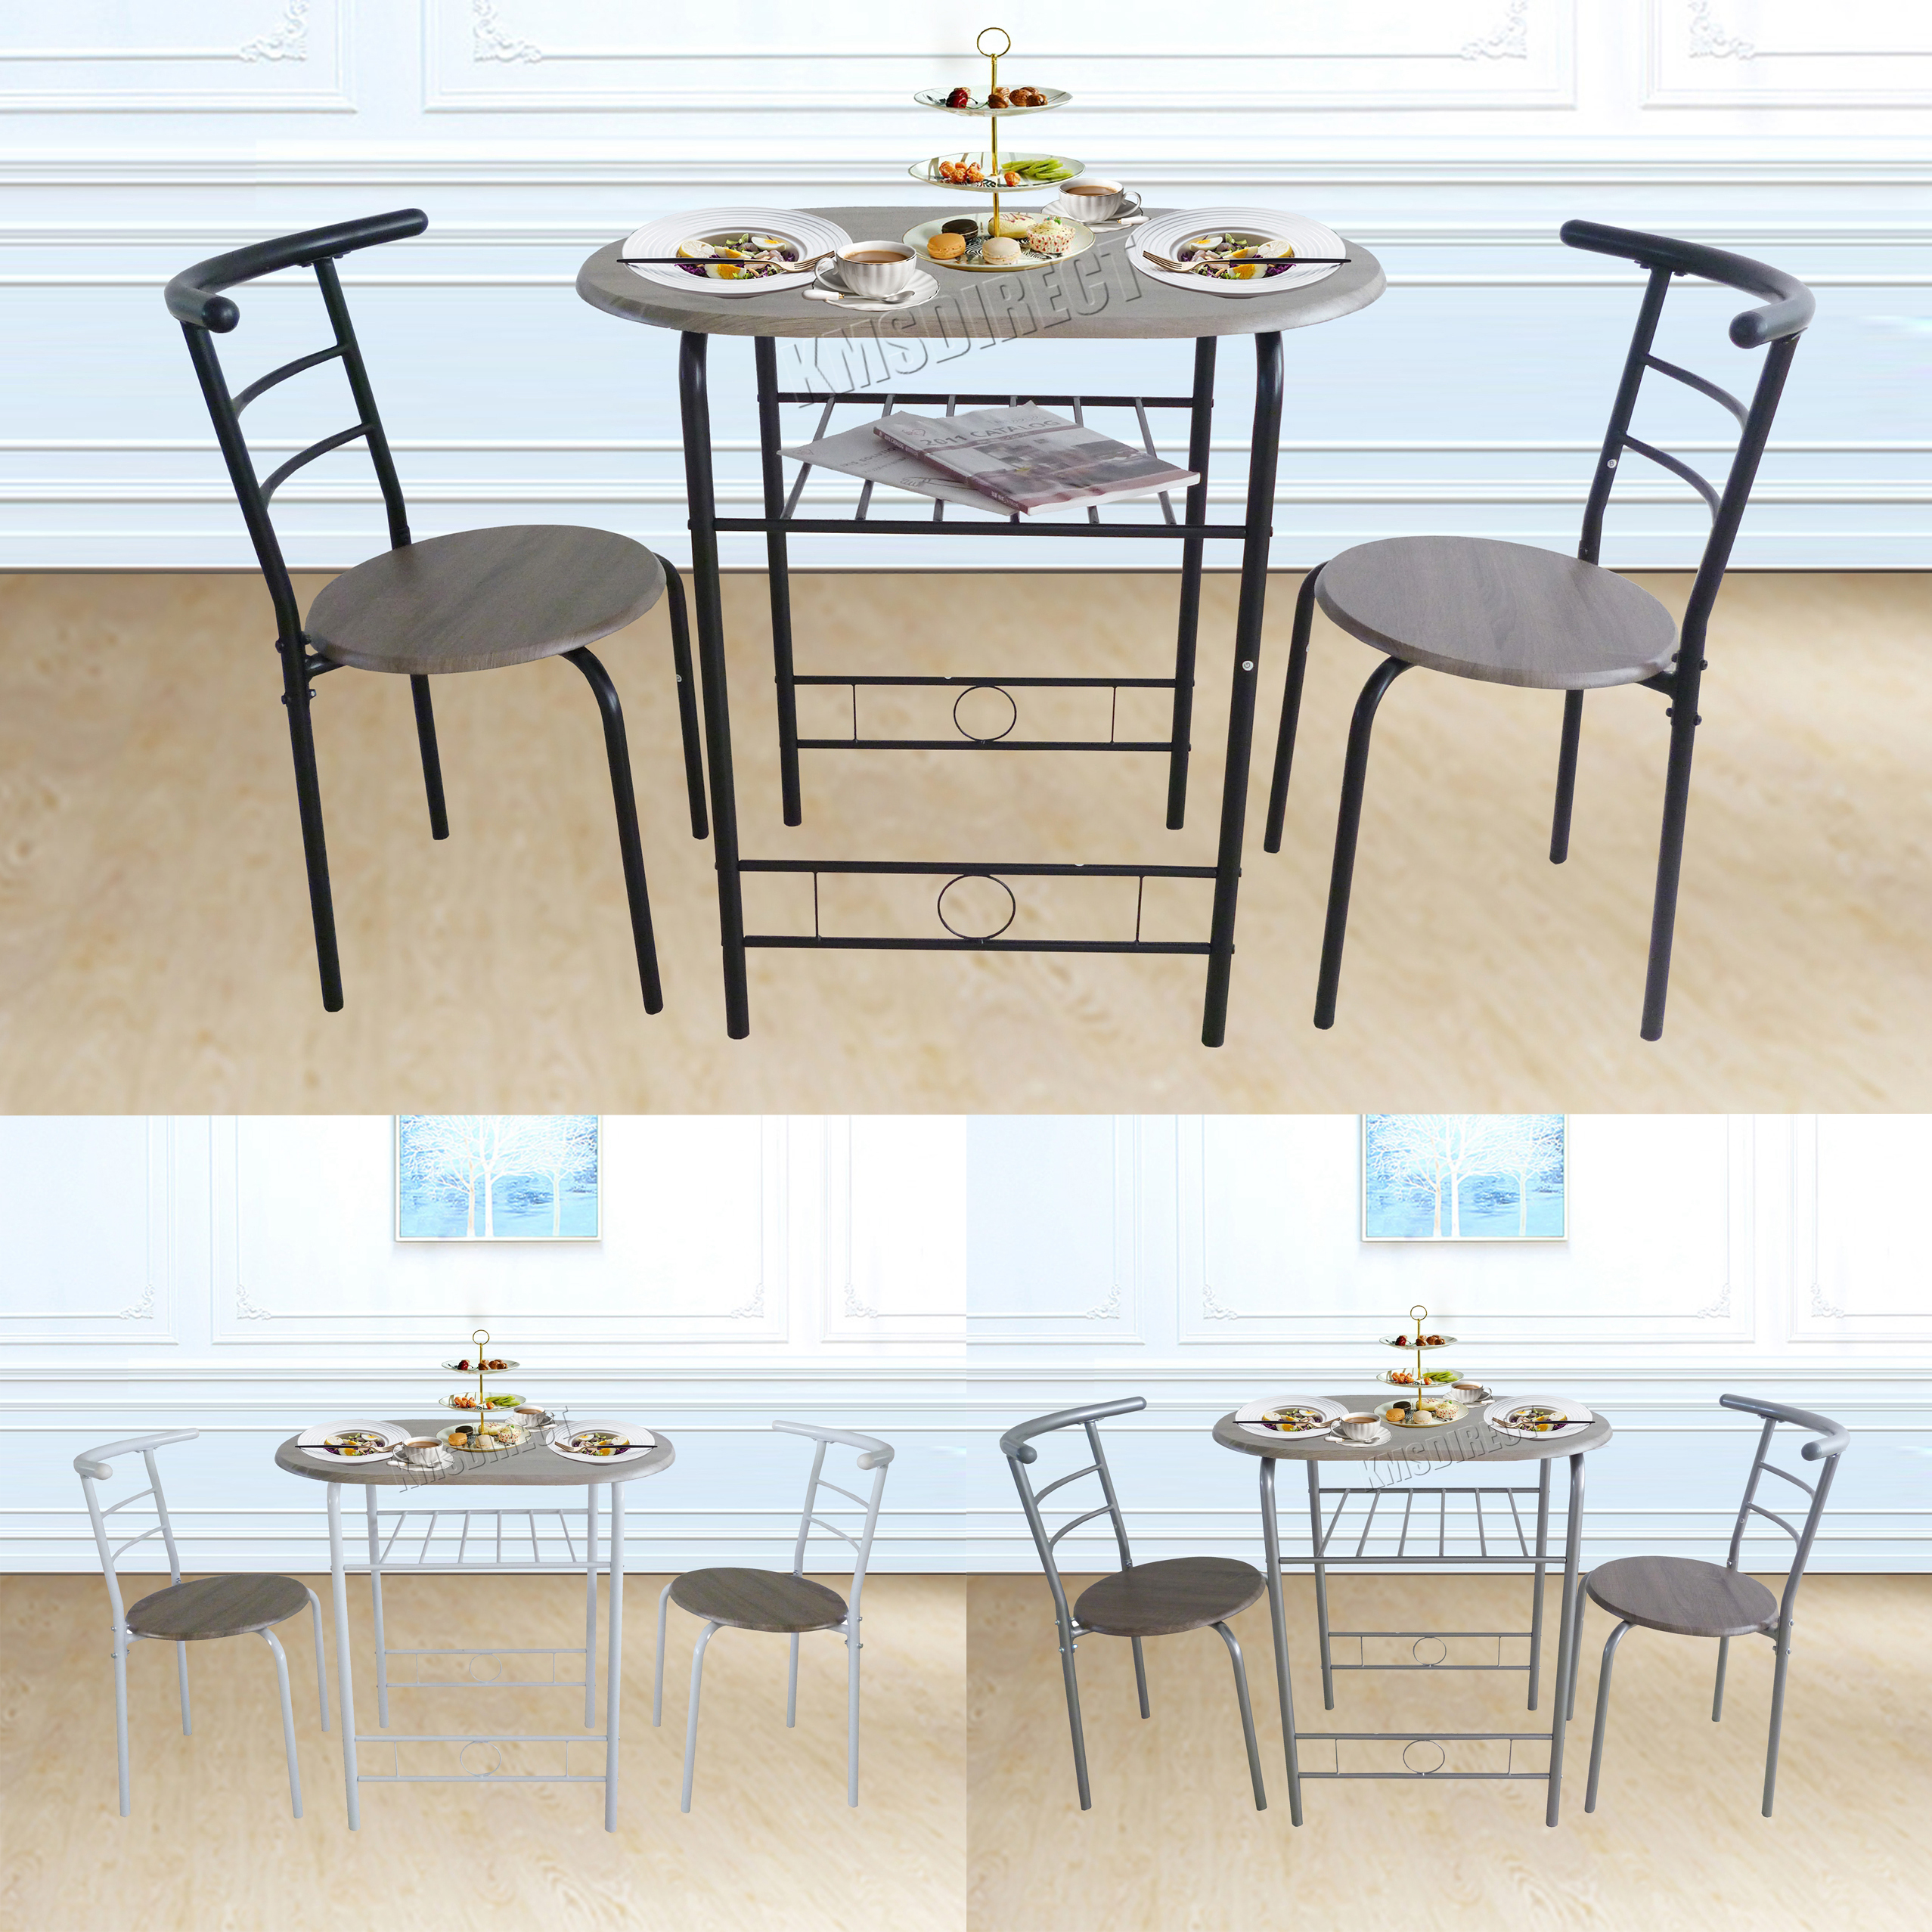 FoxHunter-Compact-Dining-Table-Breakfast-Bar-2-Chair-Set-Metal-MDF-Kitchen-DS06